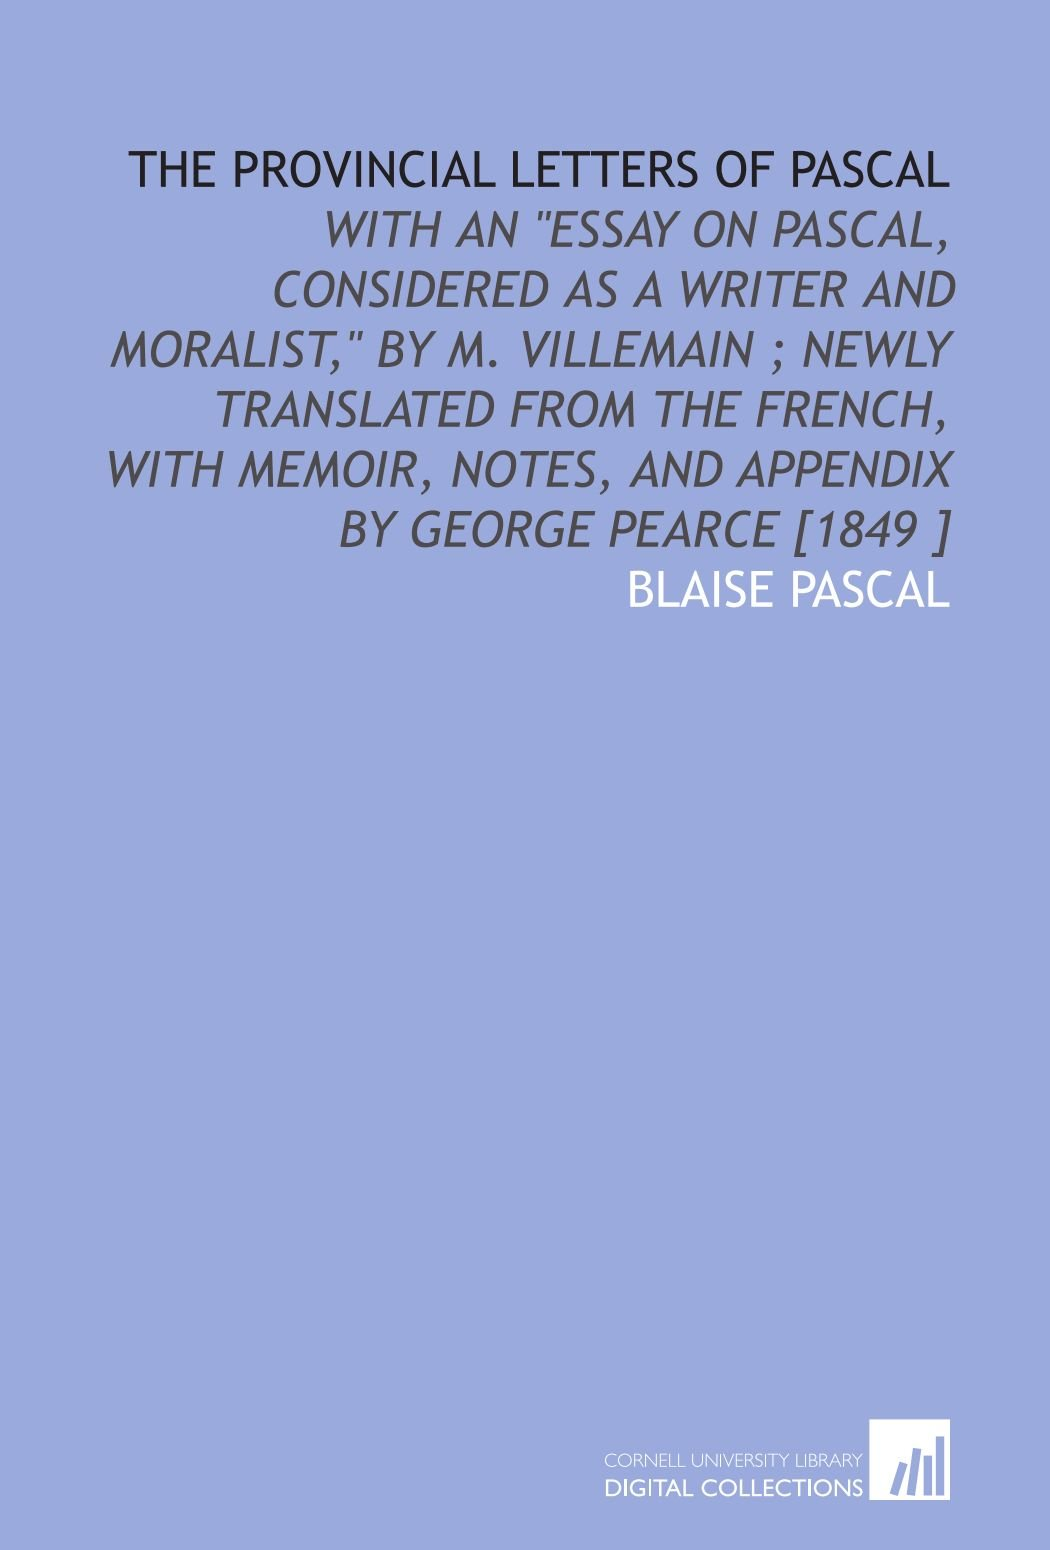 """Read Online The Provincial Letters of Pascal: With an """"Essay on Pascal, Considered as a Writer and Moralist,"""" by M. Villemain ; Newly Translated From the French, ... Notes, and Appendix by George Pearce [1849 ] PDF"""